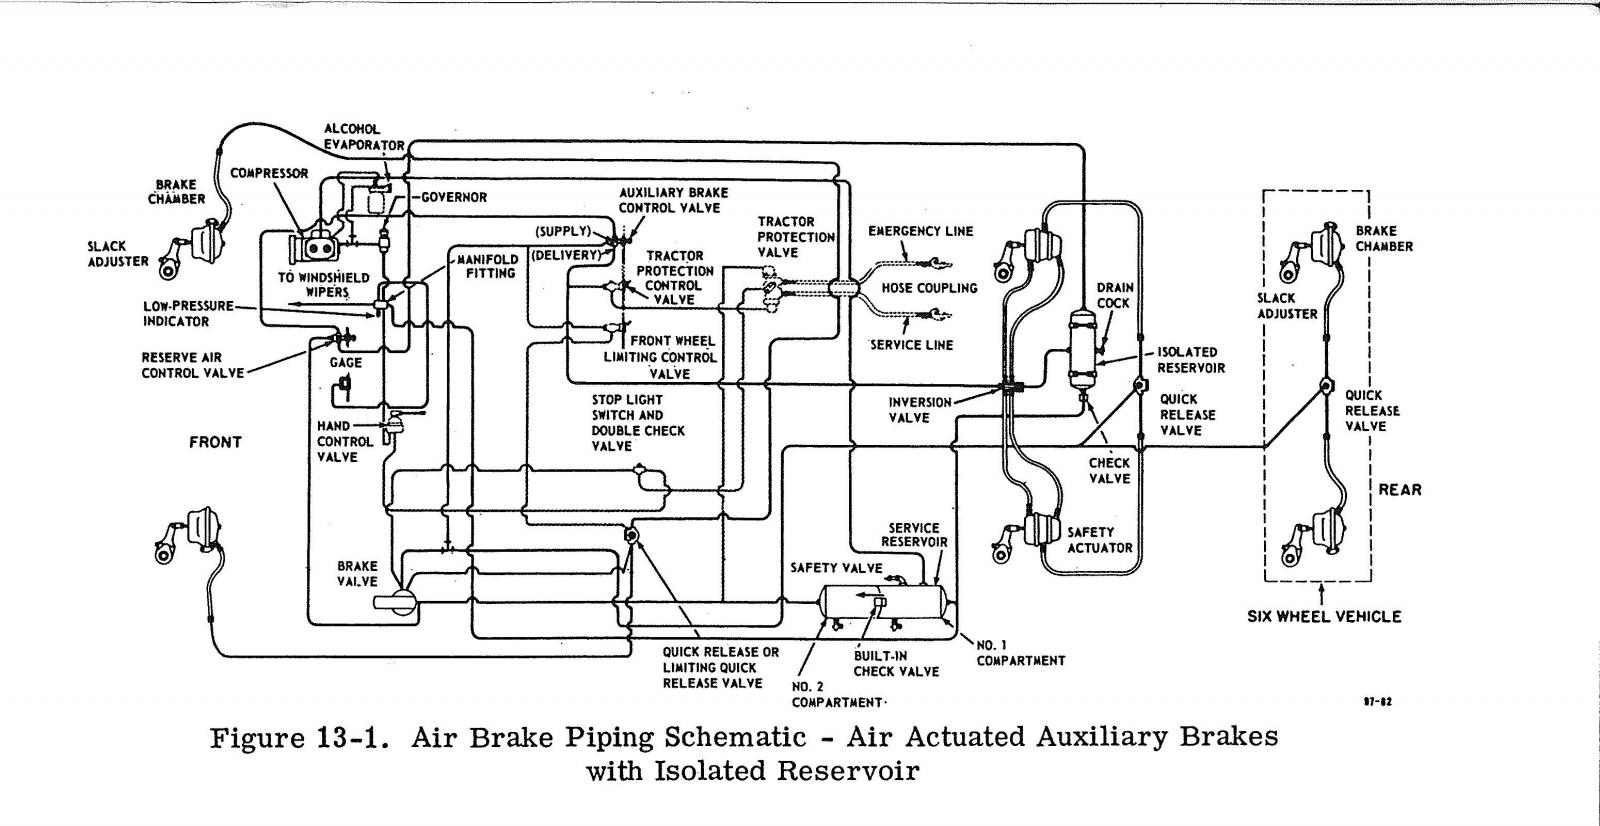 Air plumbing diagram for a b systems and brakes